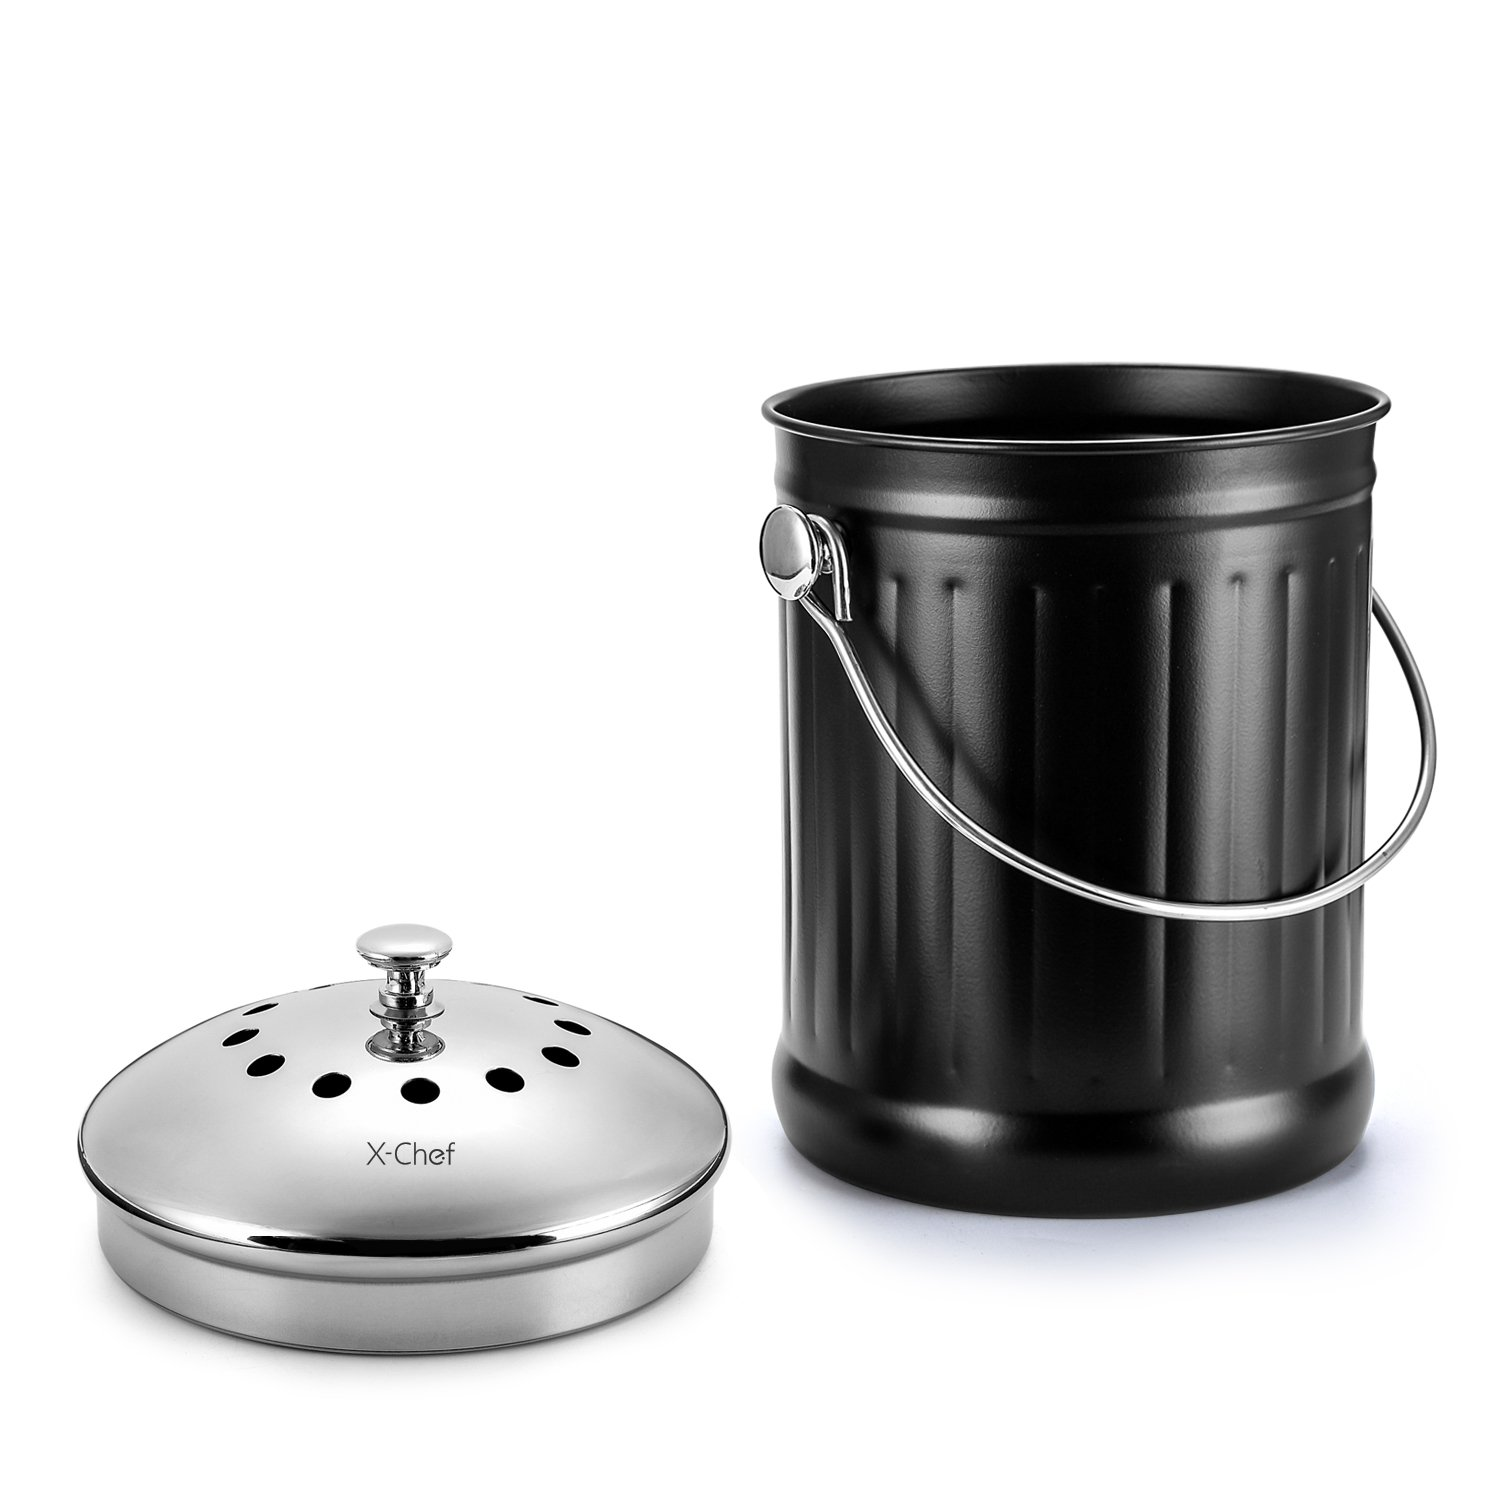 Amazon.com: Kitchen Compost Bin, X Chef Stainless Waste Bin With Cover  Trash Can 1.2 Gallon Double Filter: Kitchen U0026 Dining